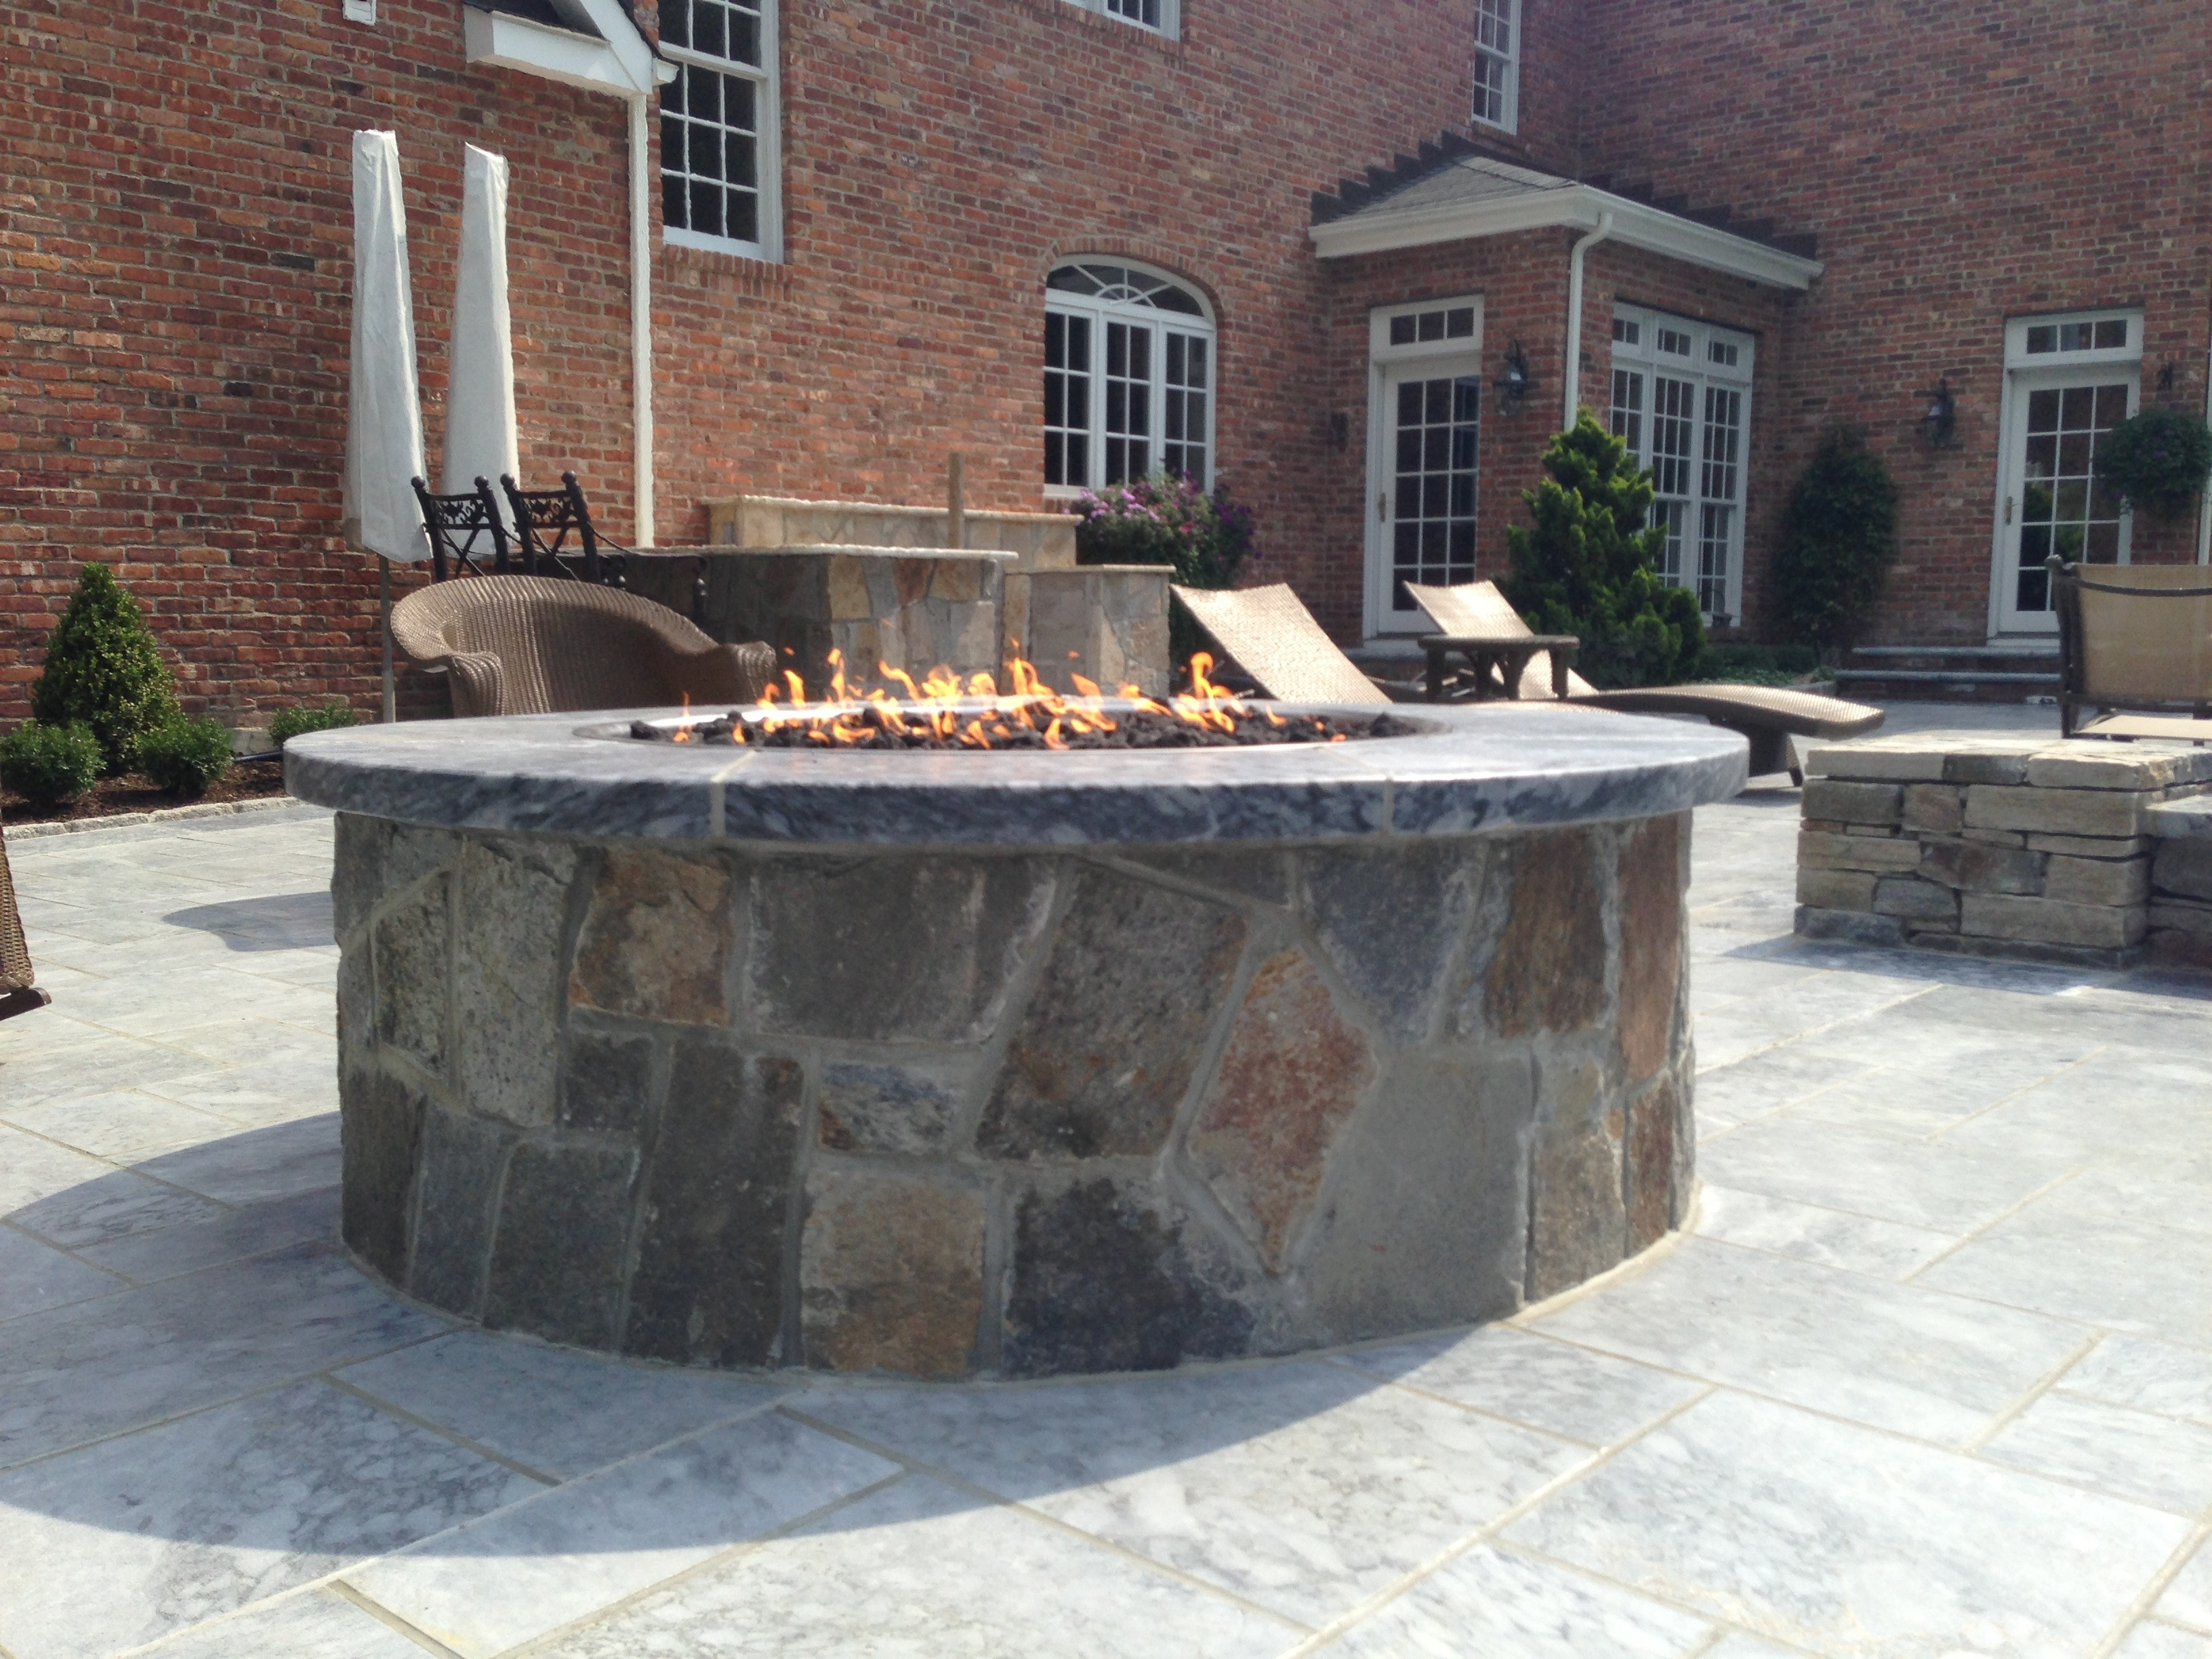 Choosing The Perfect Fire Feature For Your Backyard The Outdoor Kitchen Design Store By